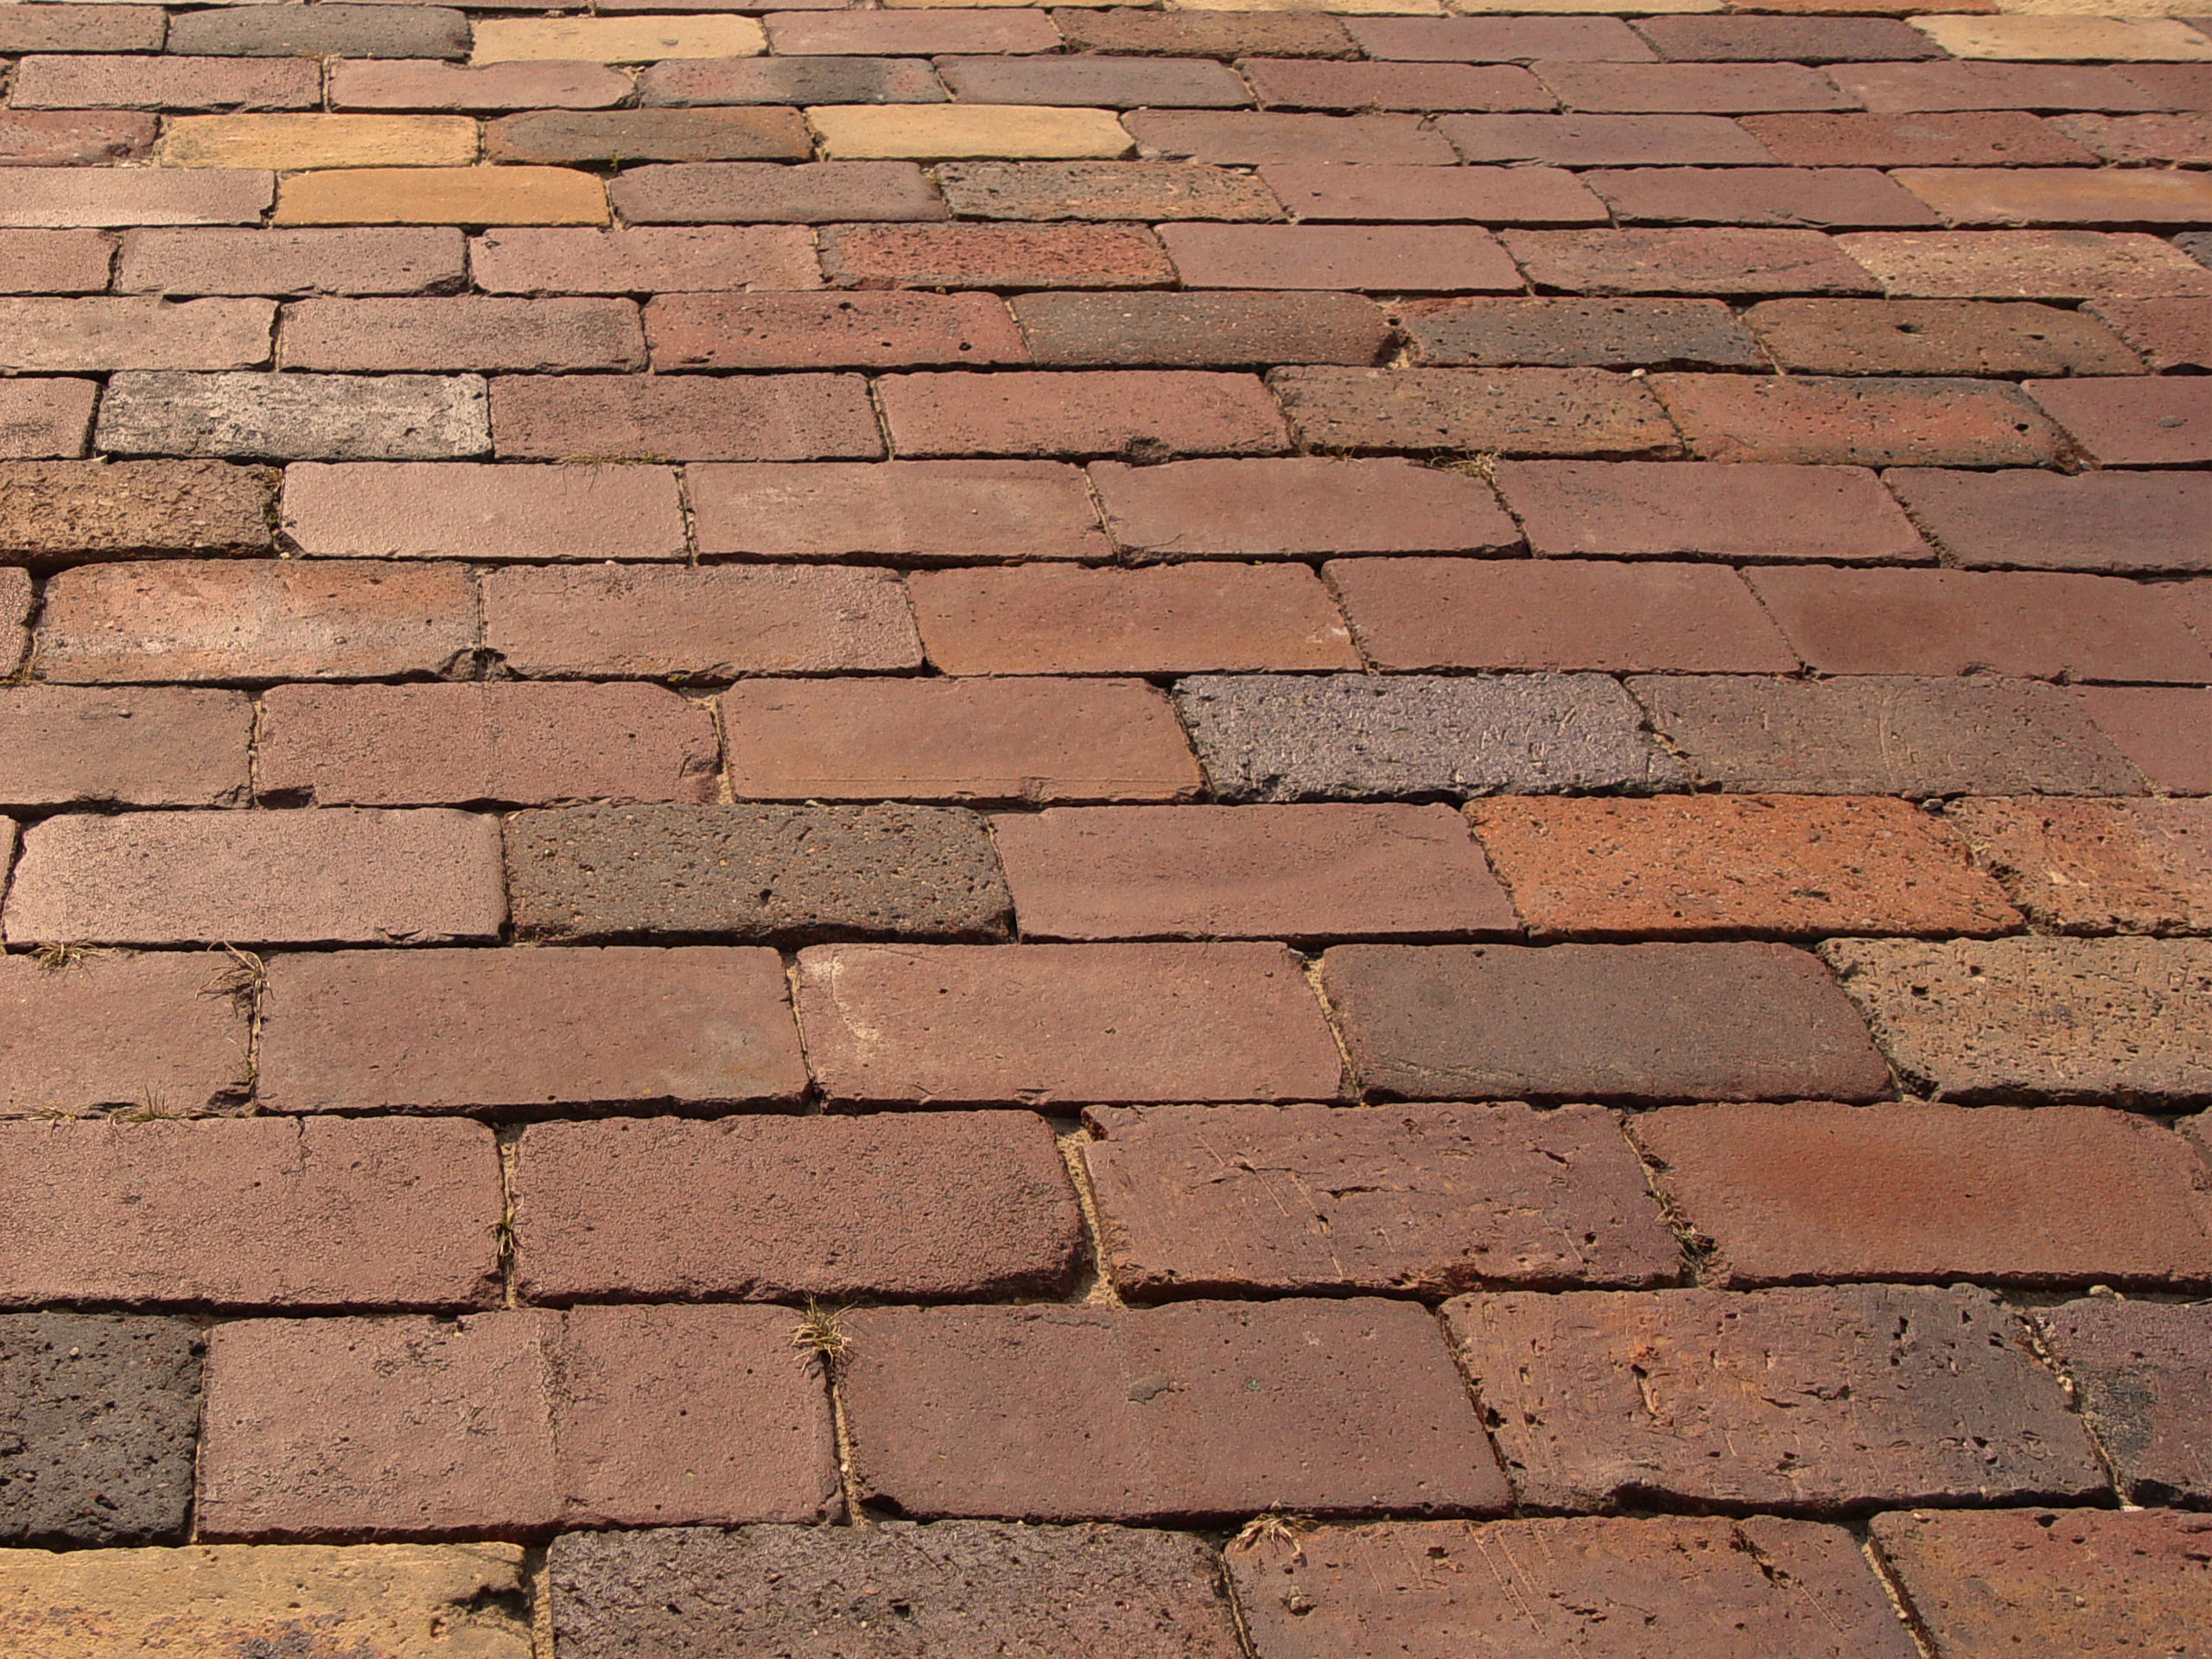 How to Decide Between Concrete and Brick Pavers